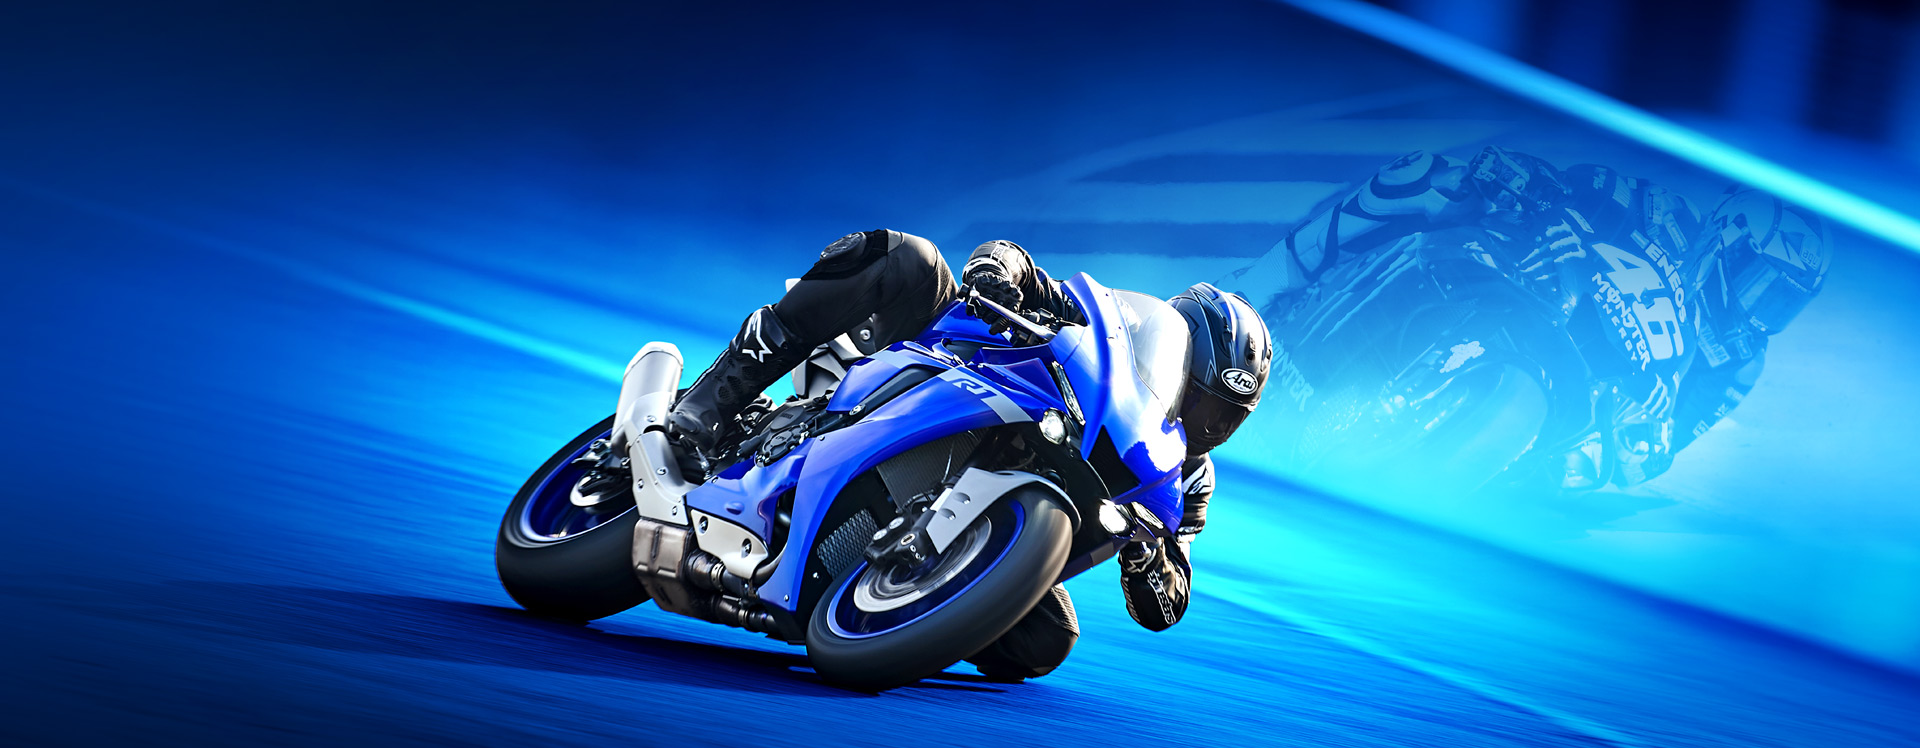 2020 Yamaha Yzf R1 Supersport Motorcycle Model Home